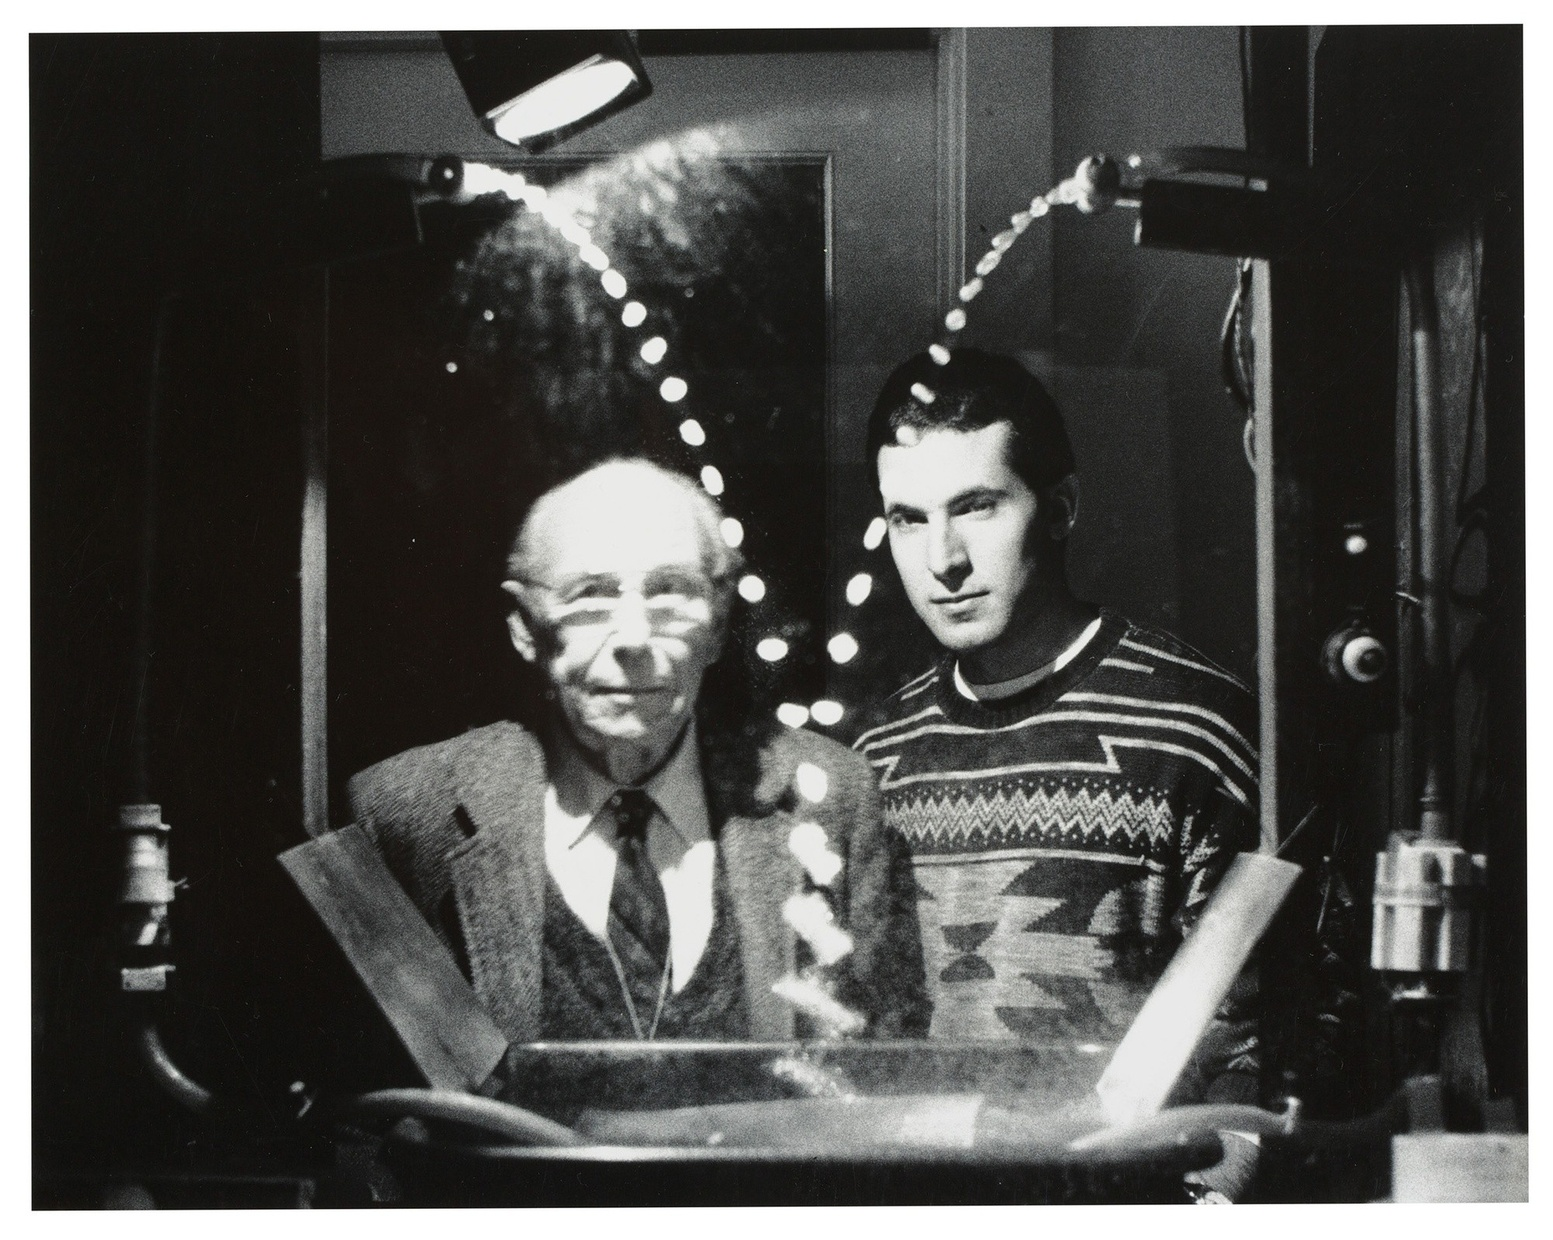 A black and white photograph of an old, light-skinned standing next to a younger, light-skinned man behind a contraption dripping water from two different sides.